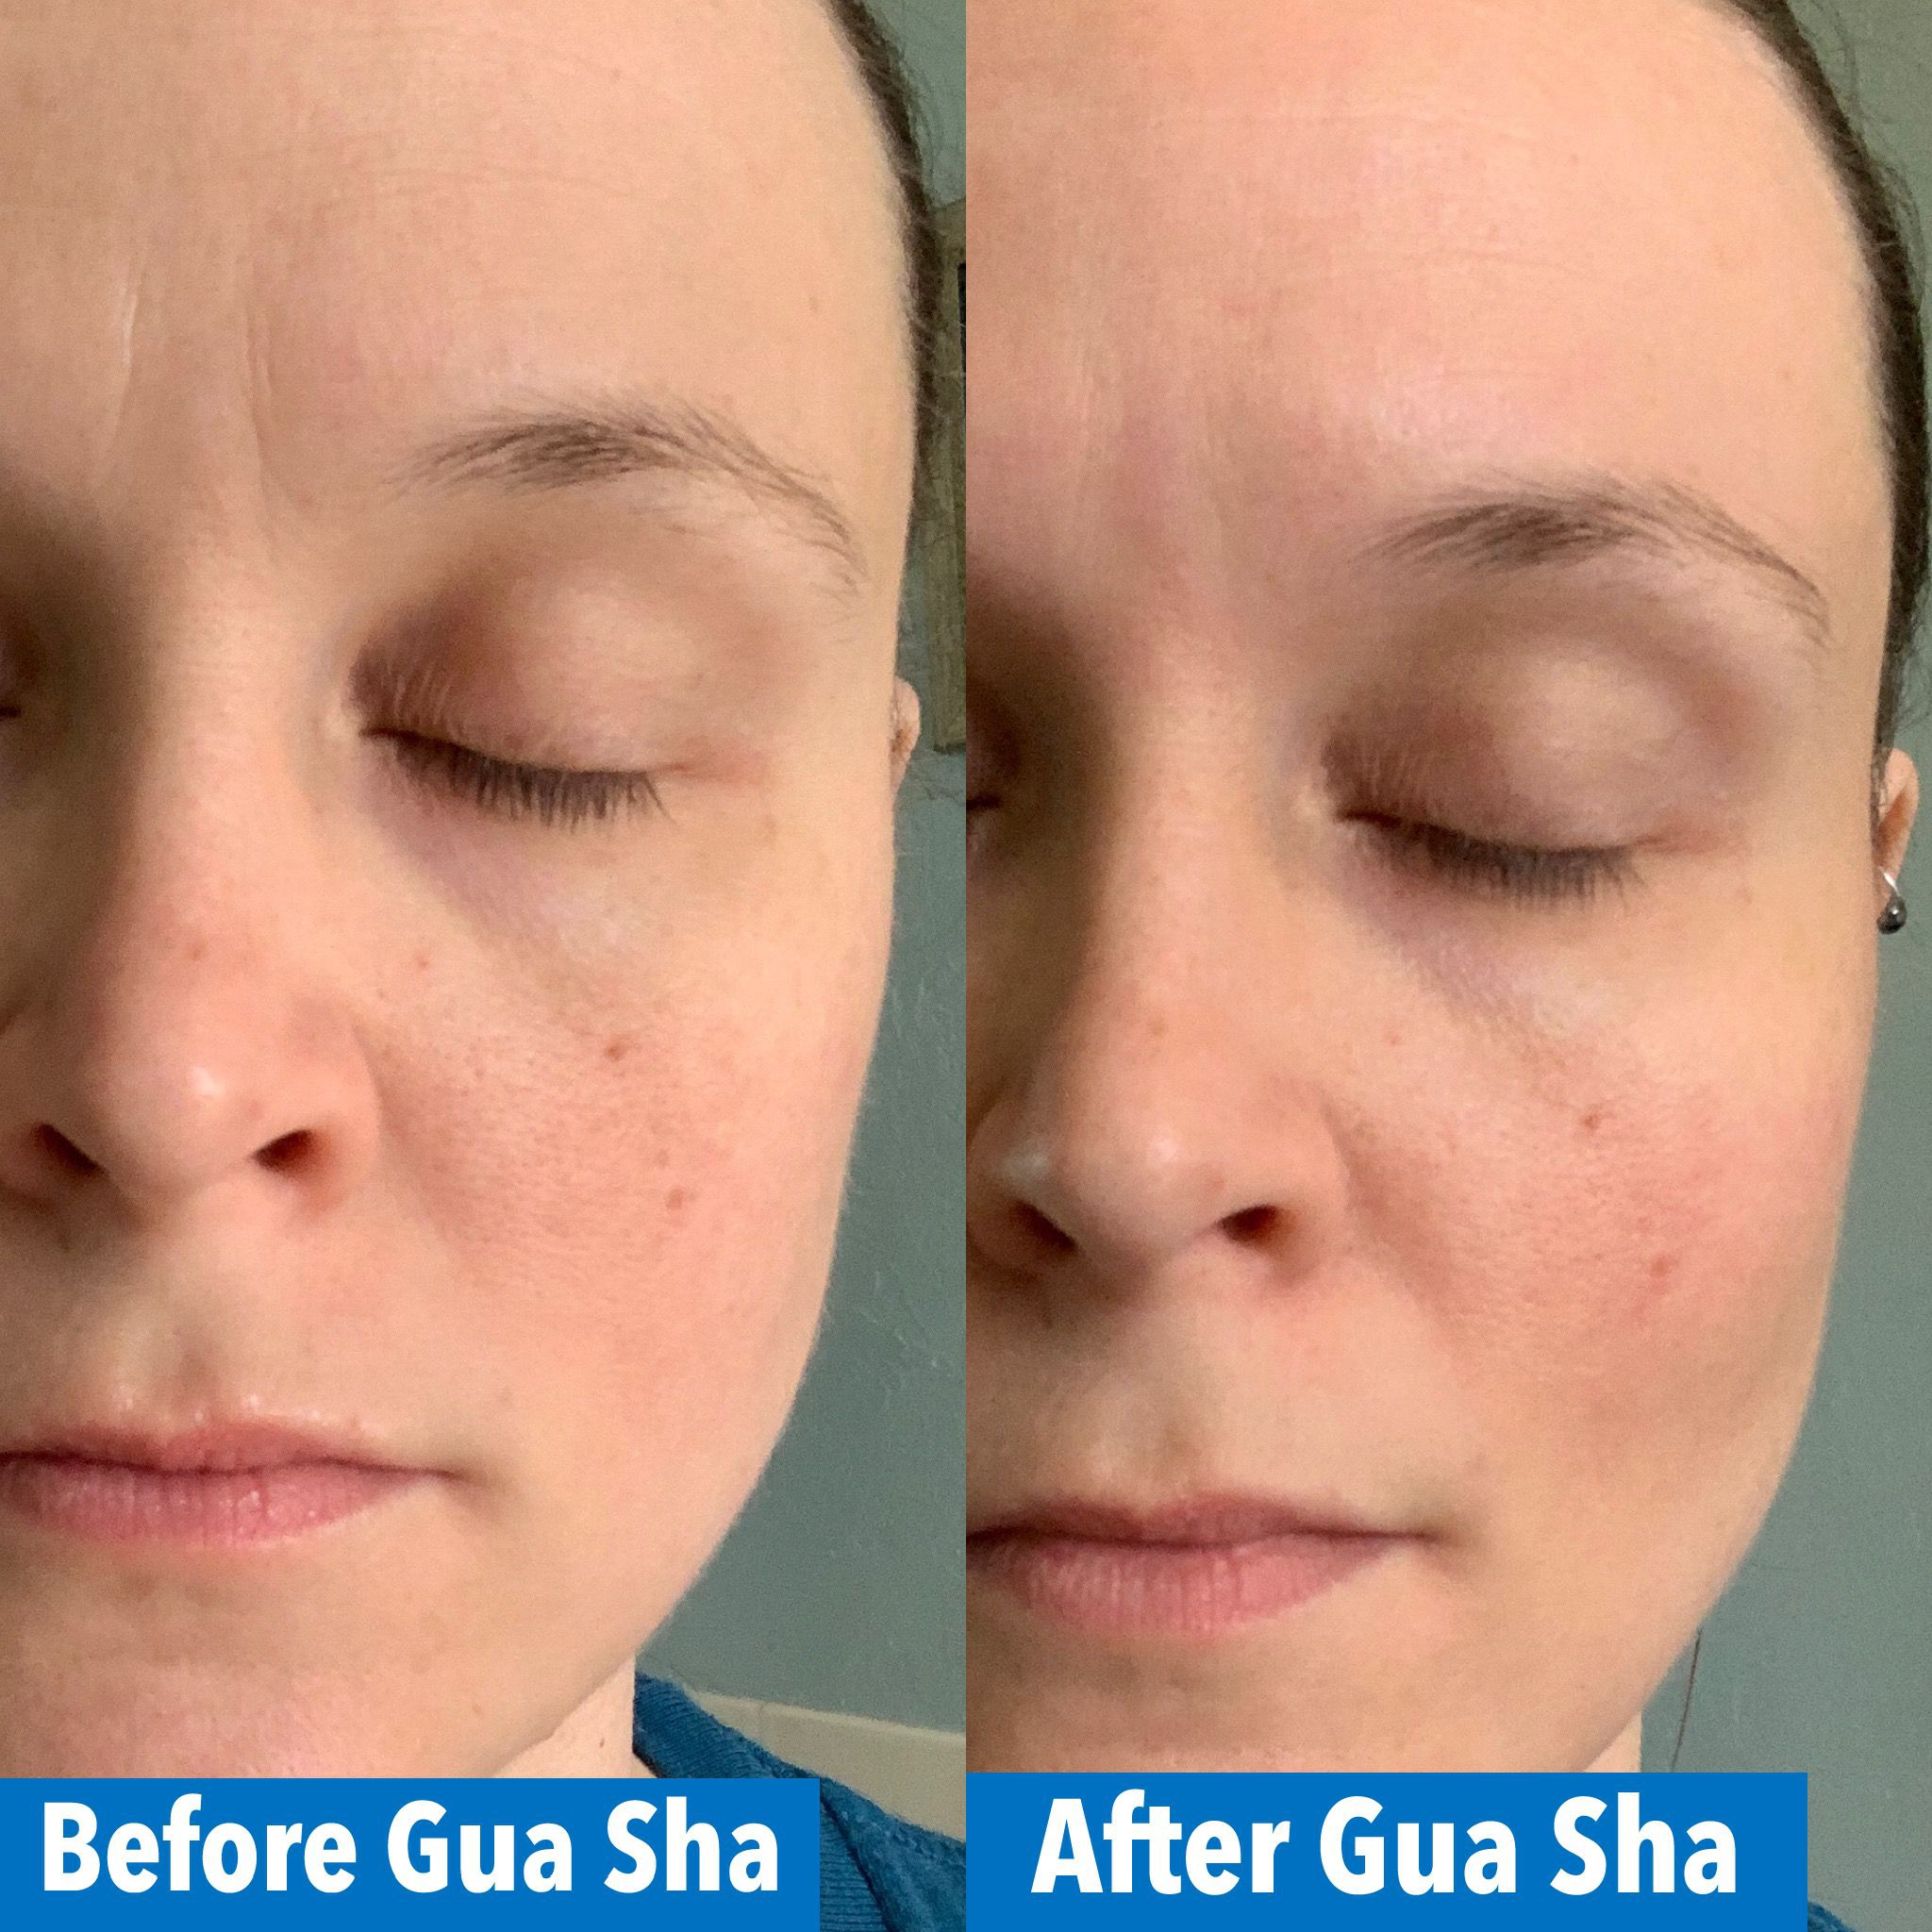 before and after facial gua sha